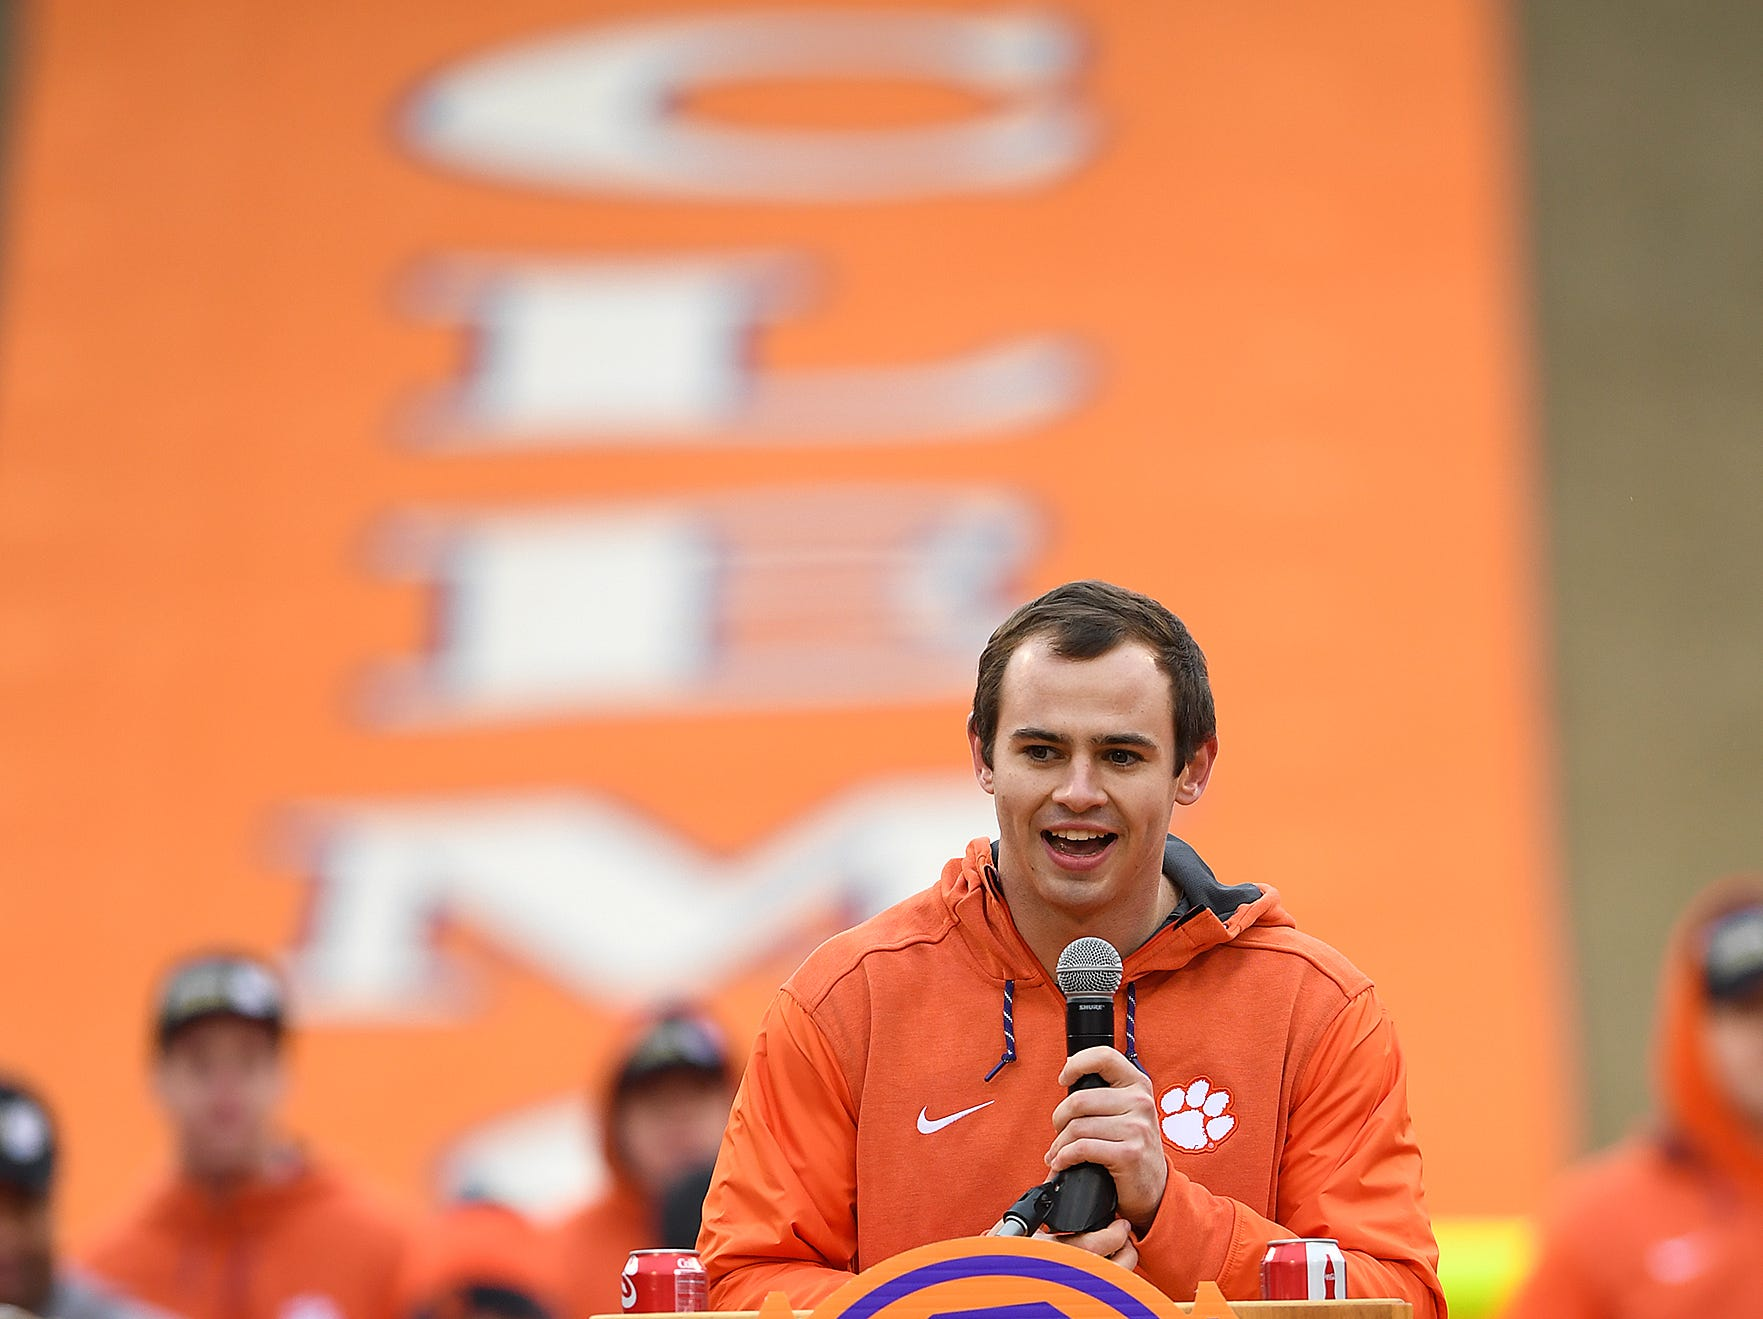 Clemson senior wide receiver Hunter Renfrow during the Tigers National Championship celebration Saturday, January 12, 2019 at Clemson's Memorial Stadium.